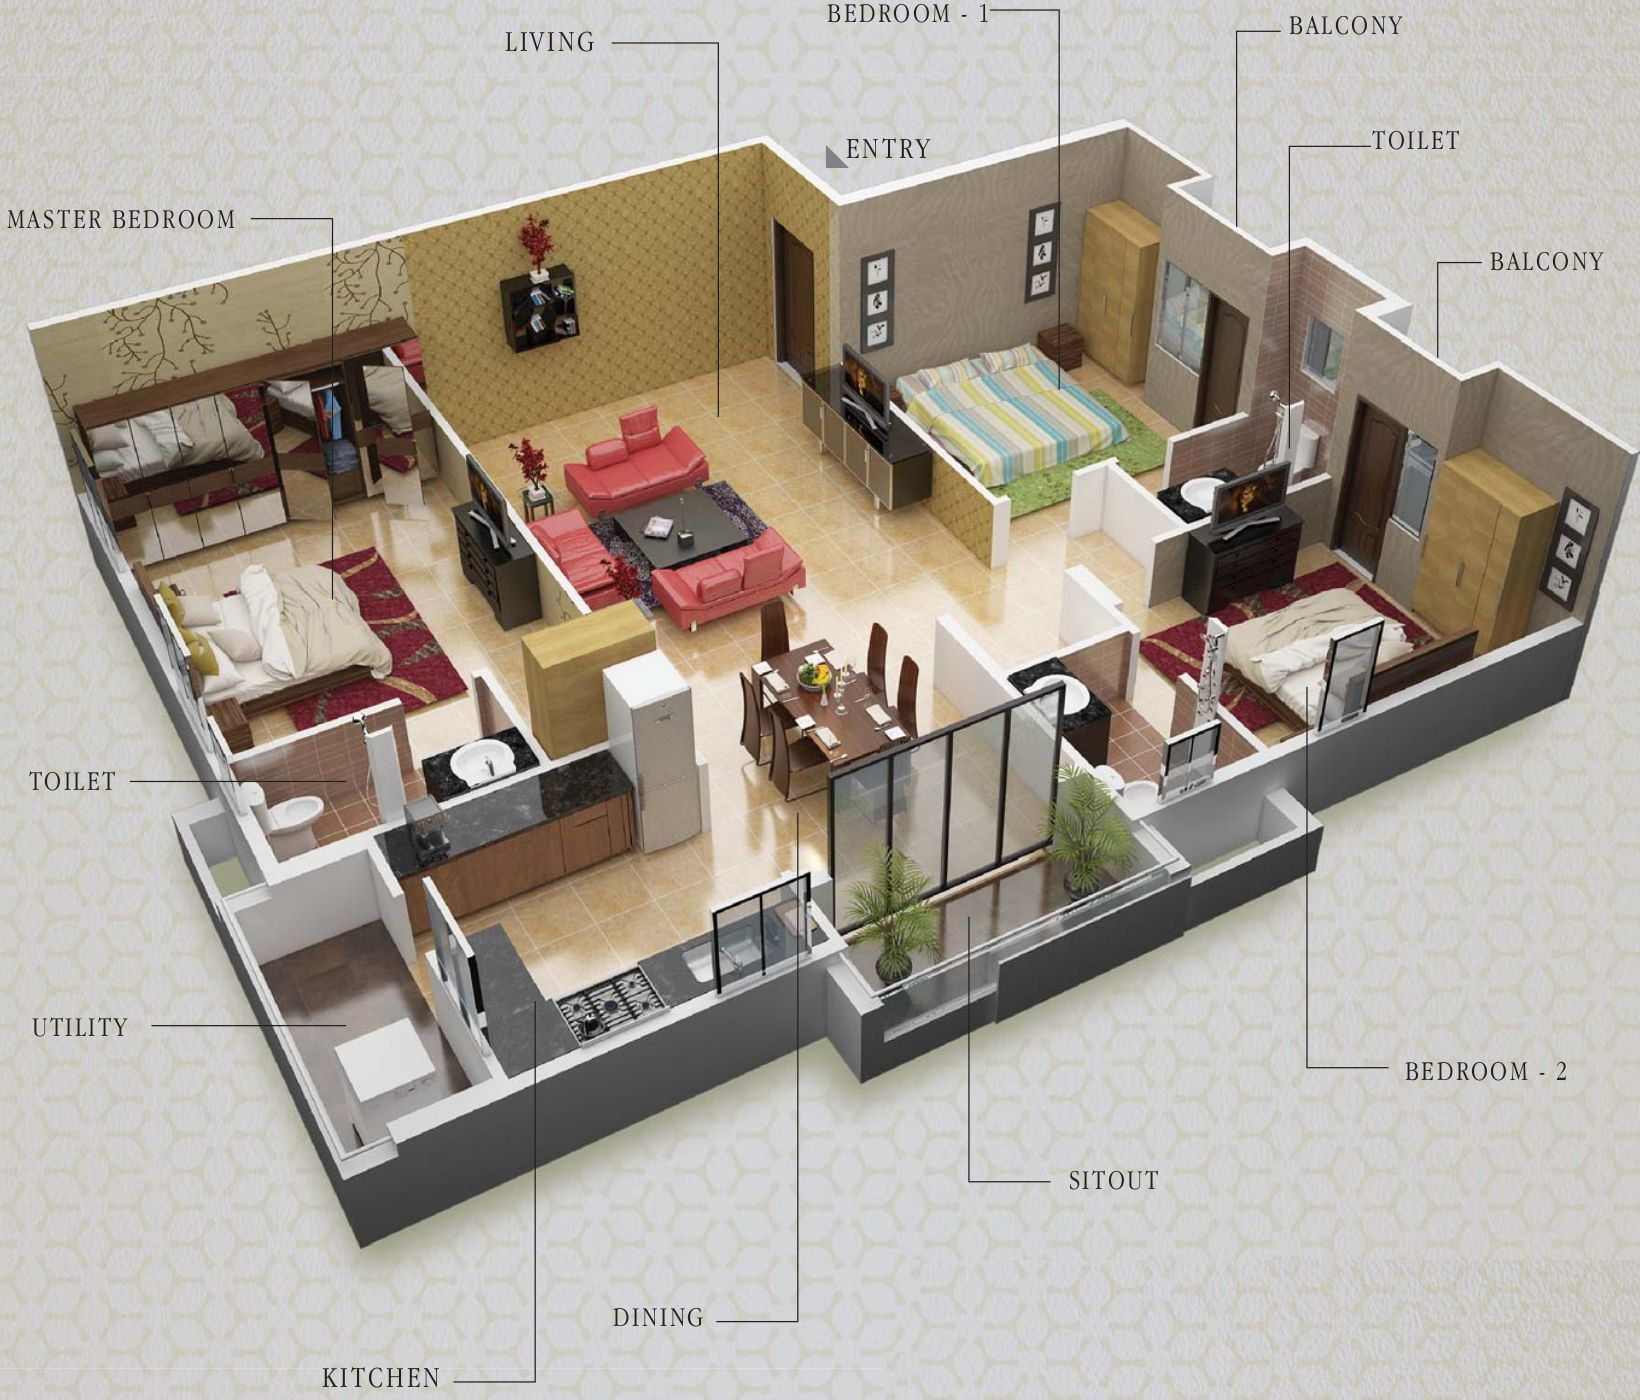 Dharma Construction Residency Floor Plan 3bhk 3t 1 795 Sq Ft Pooja Room 1795 Sq Ft